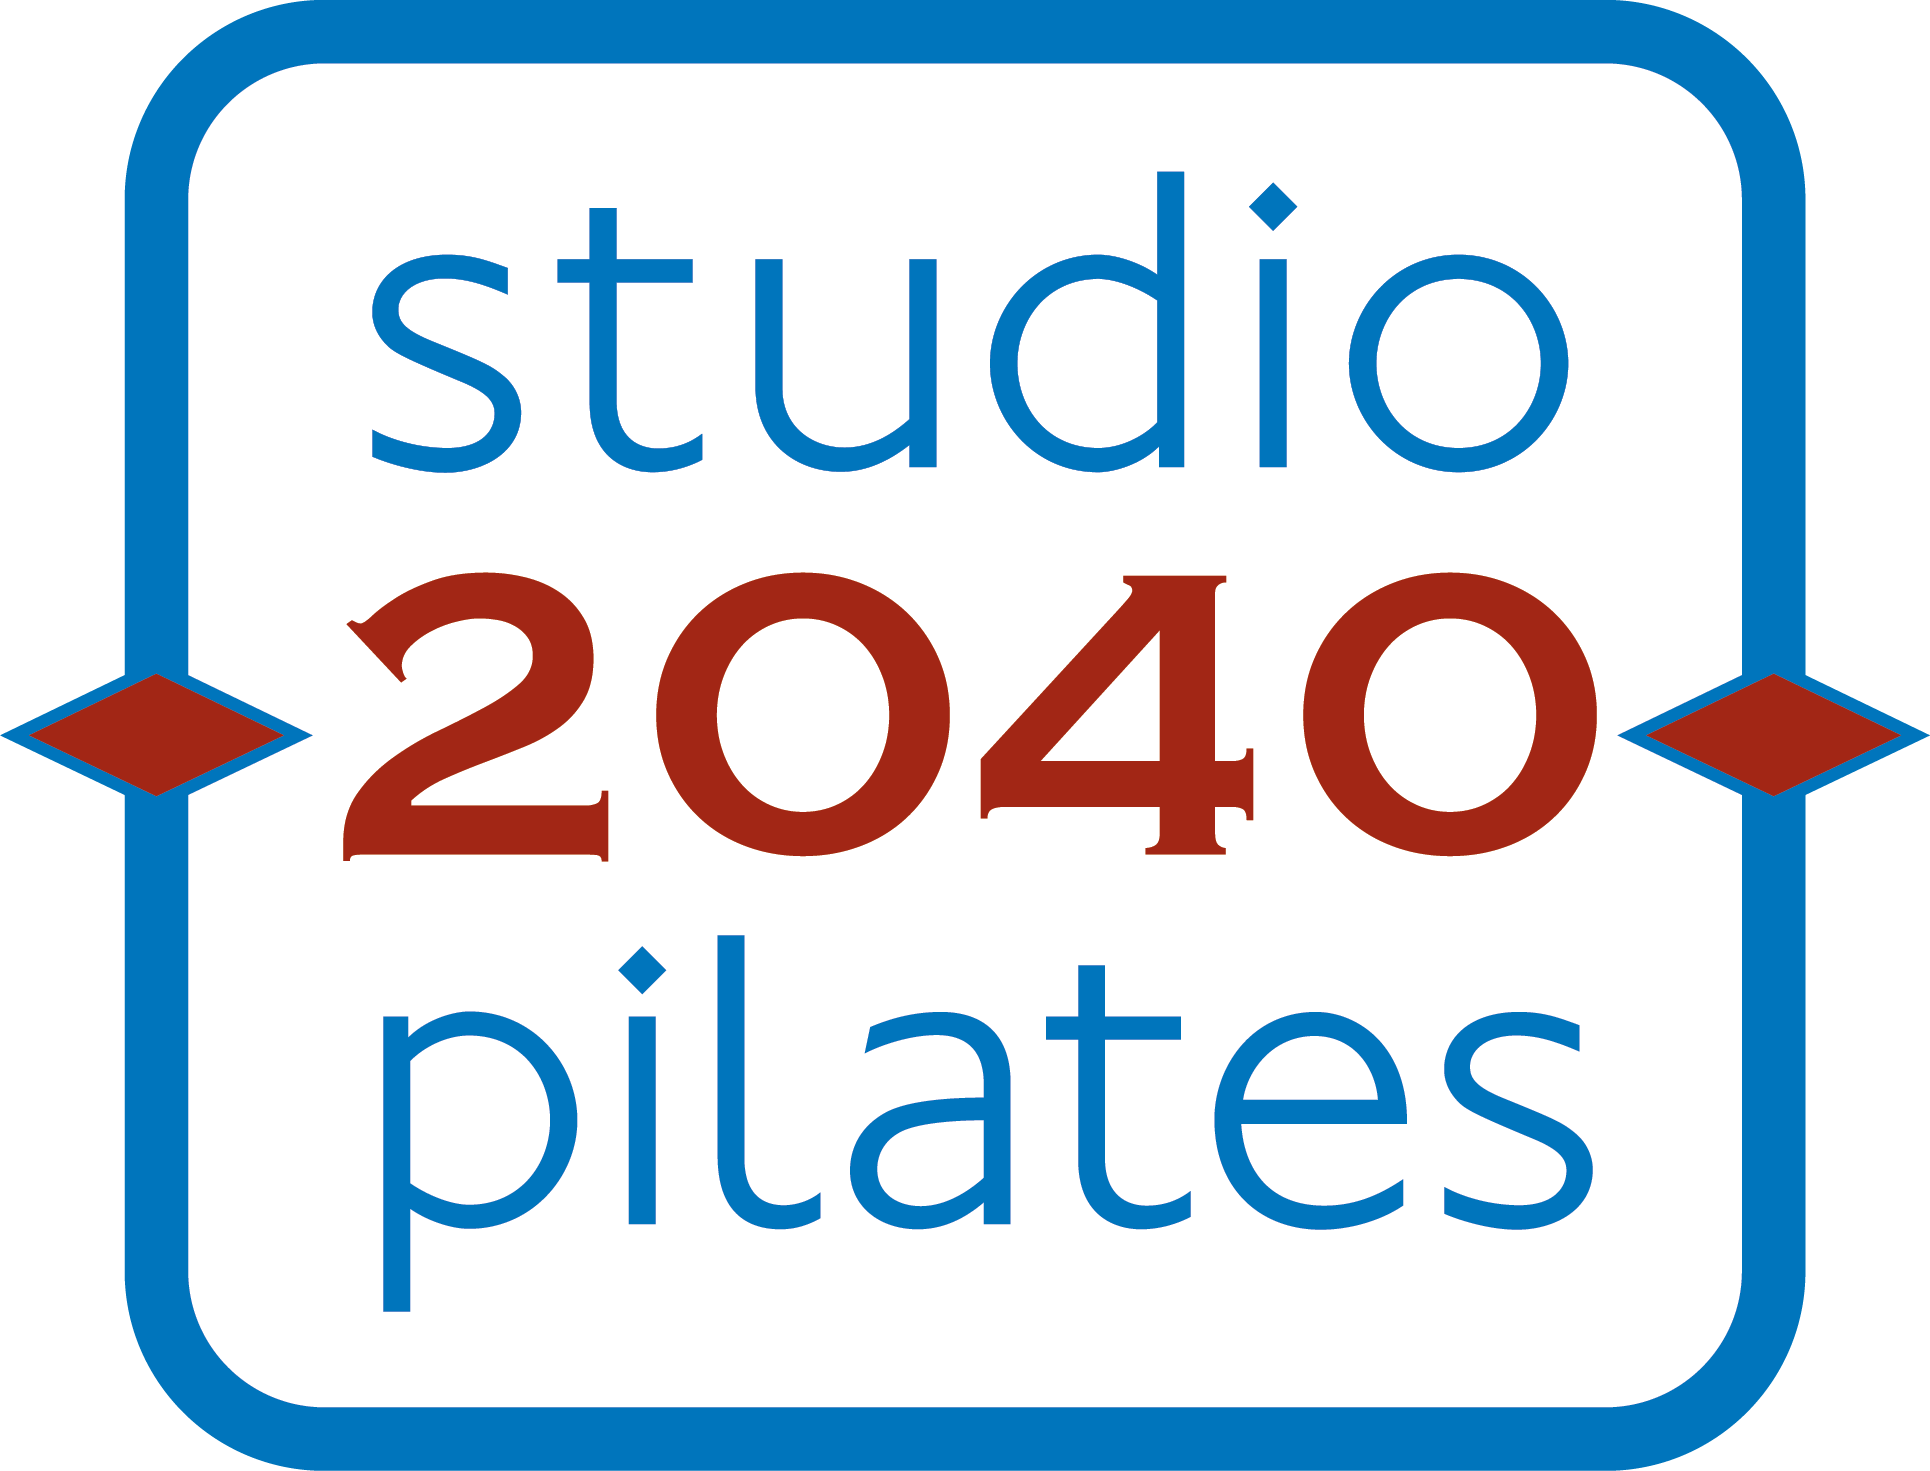 Studio_2040_Pilates.png